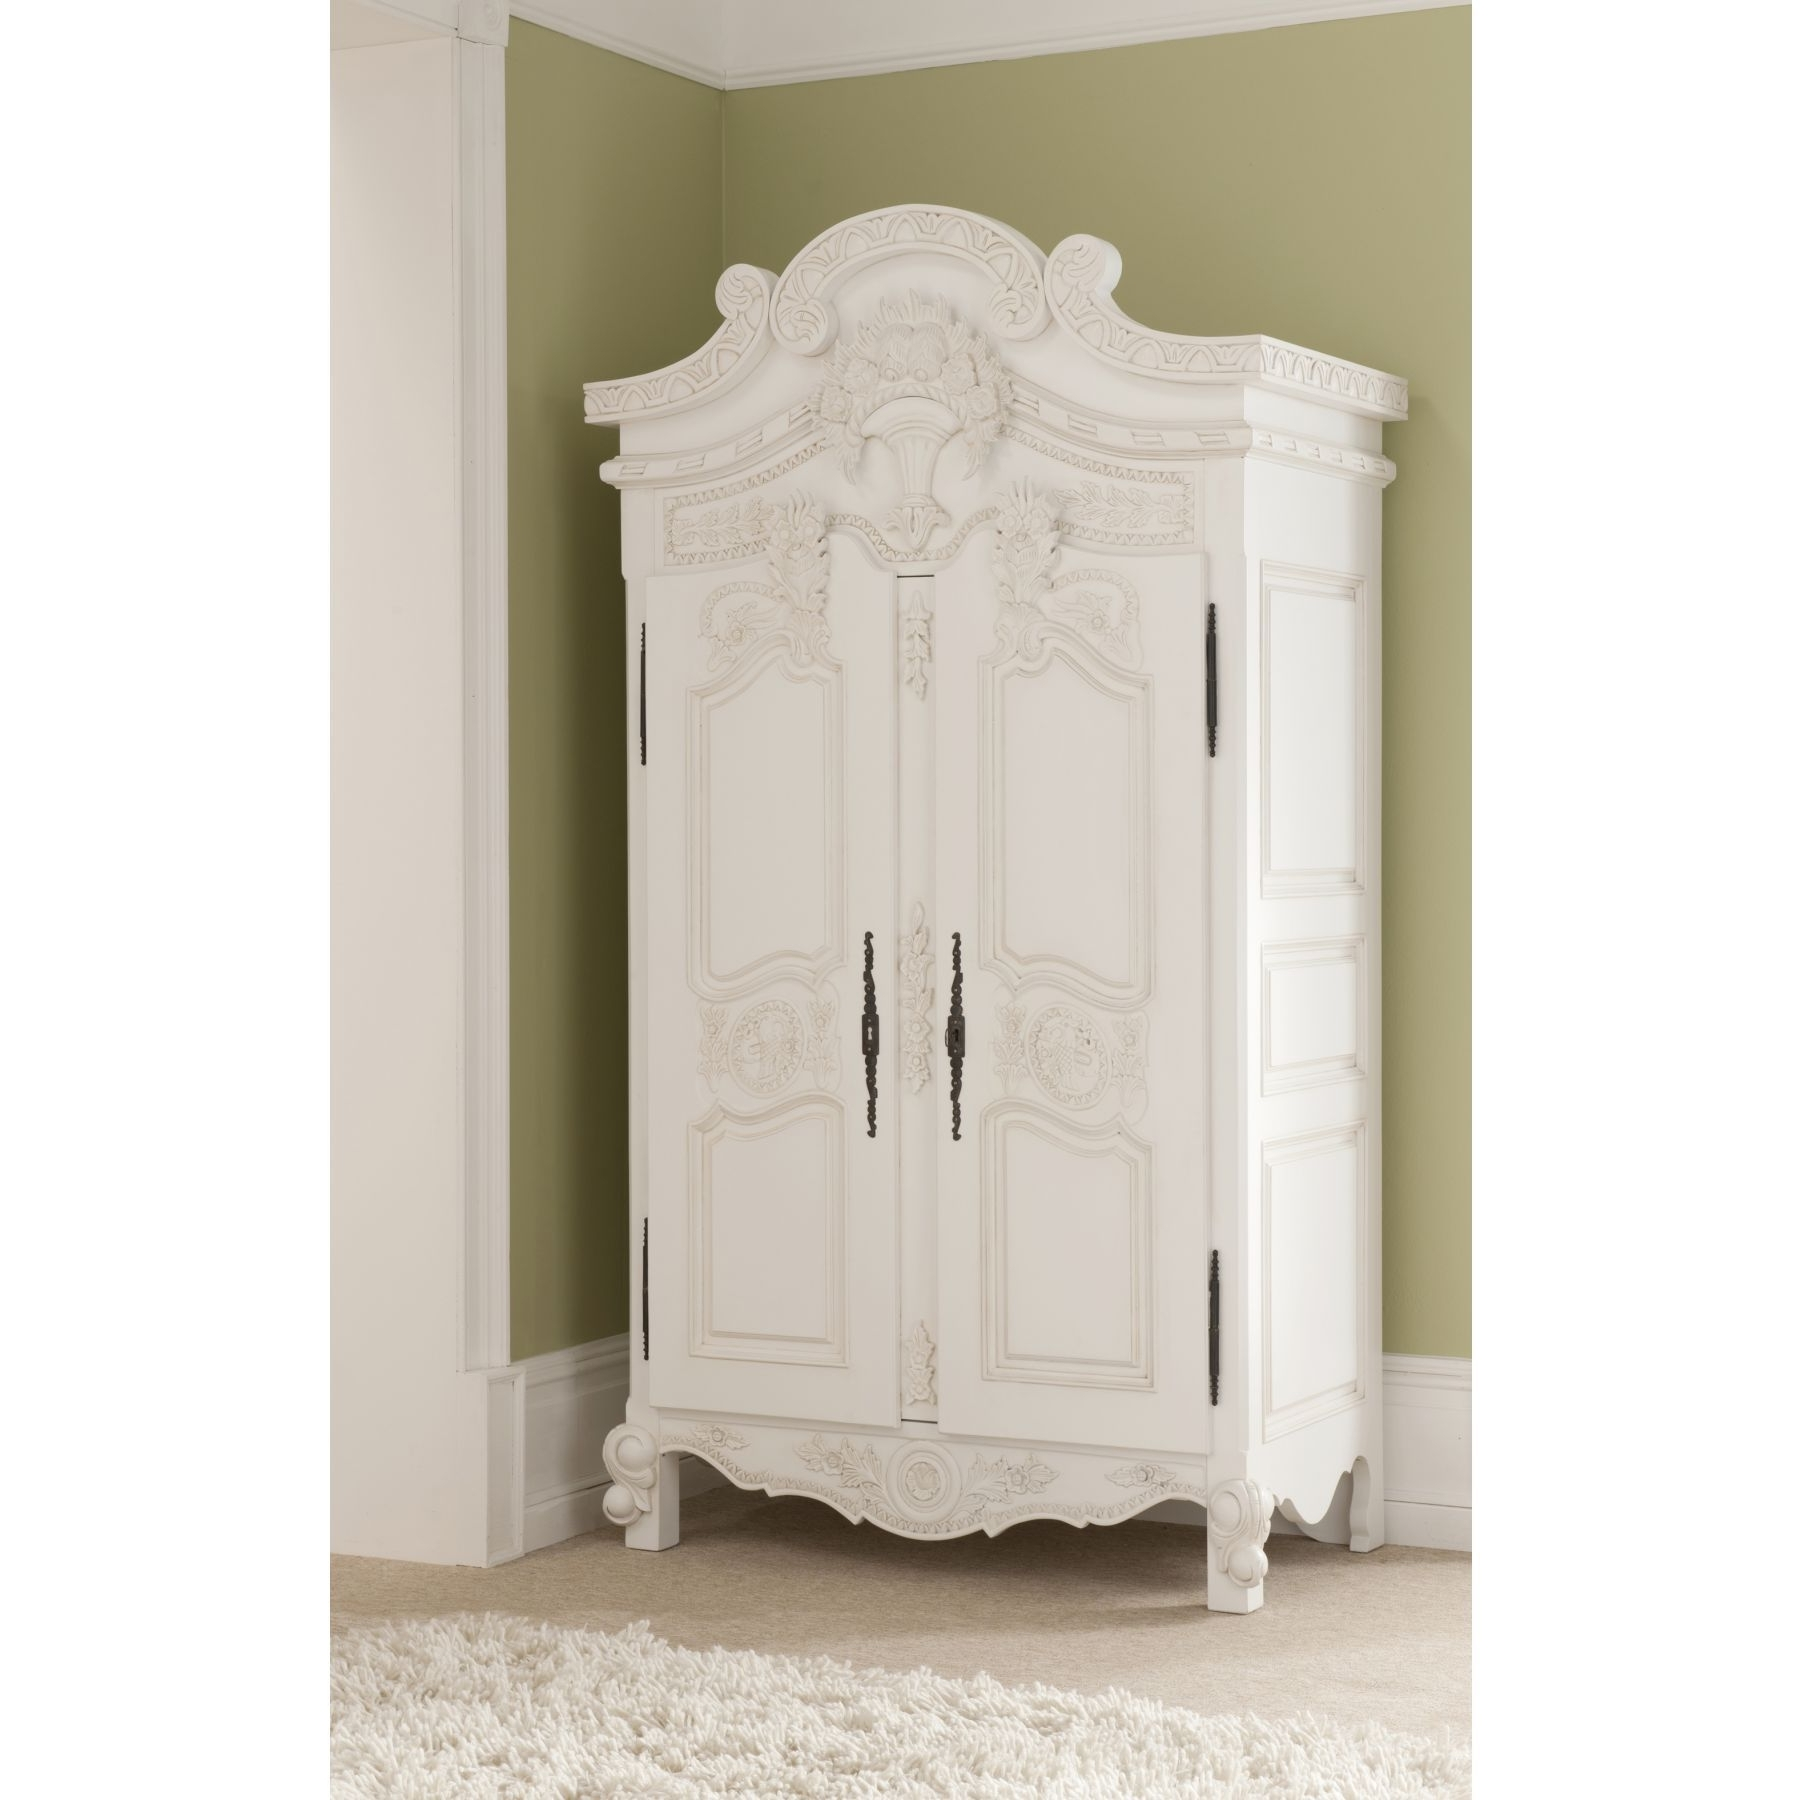 Furniture Pertaining To Shabby Chic Wardrobes (View 1 of 15)